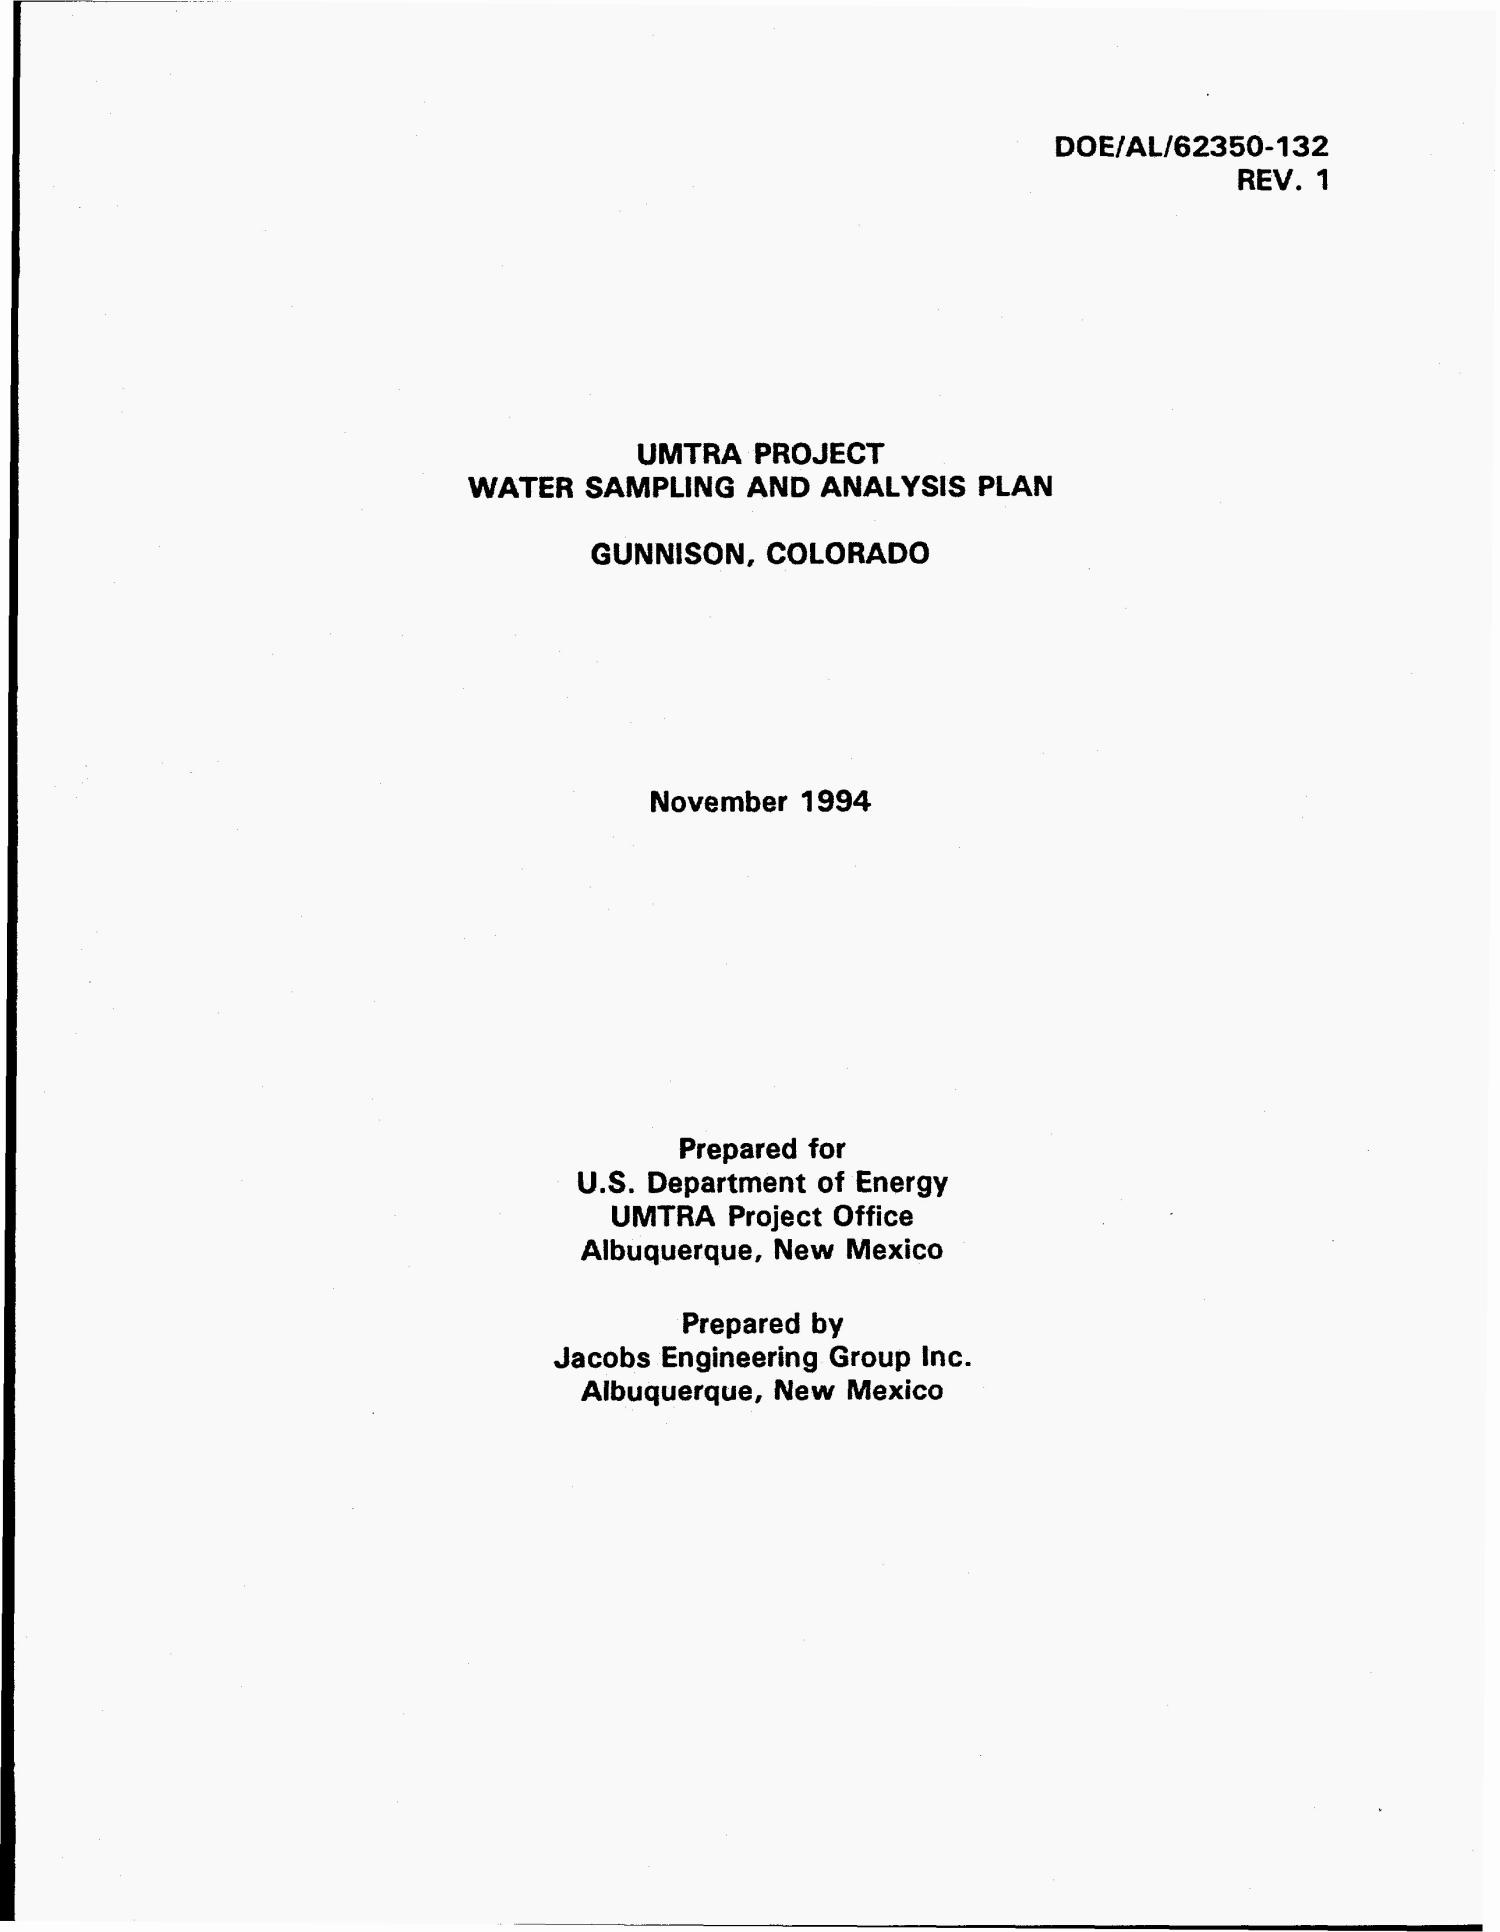 Umtra Project Water Sampling and Analysis Plan, Gunnison, Colorado: Revision 1                                                                                                      [Sequence #]: 4 of 72